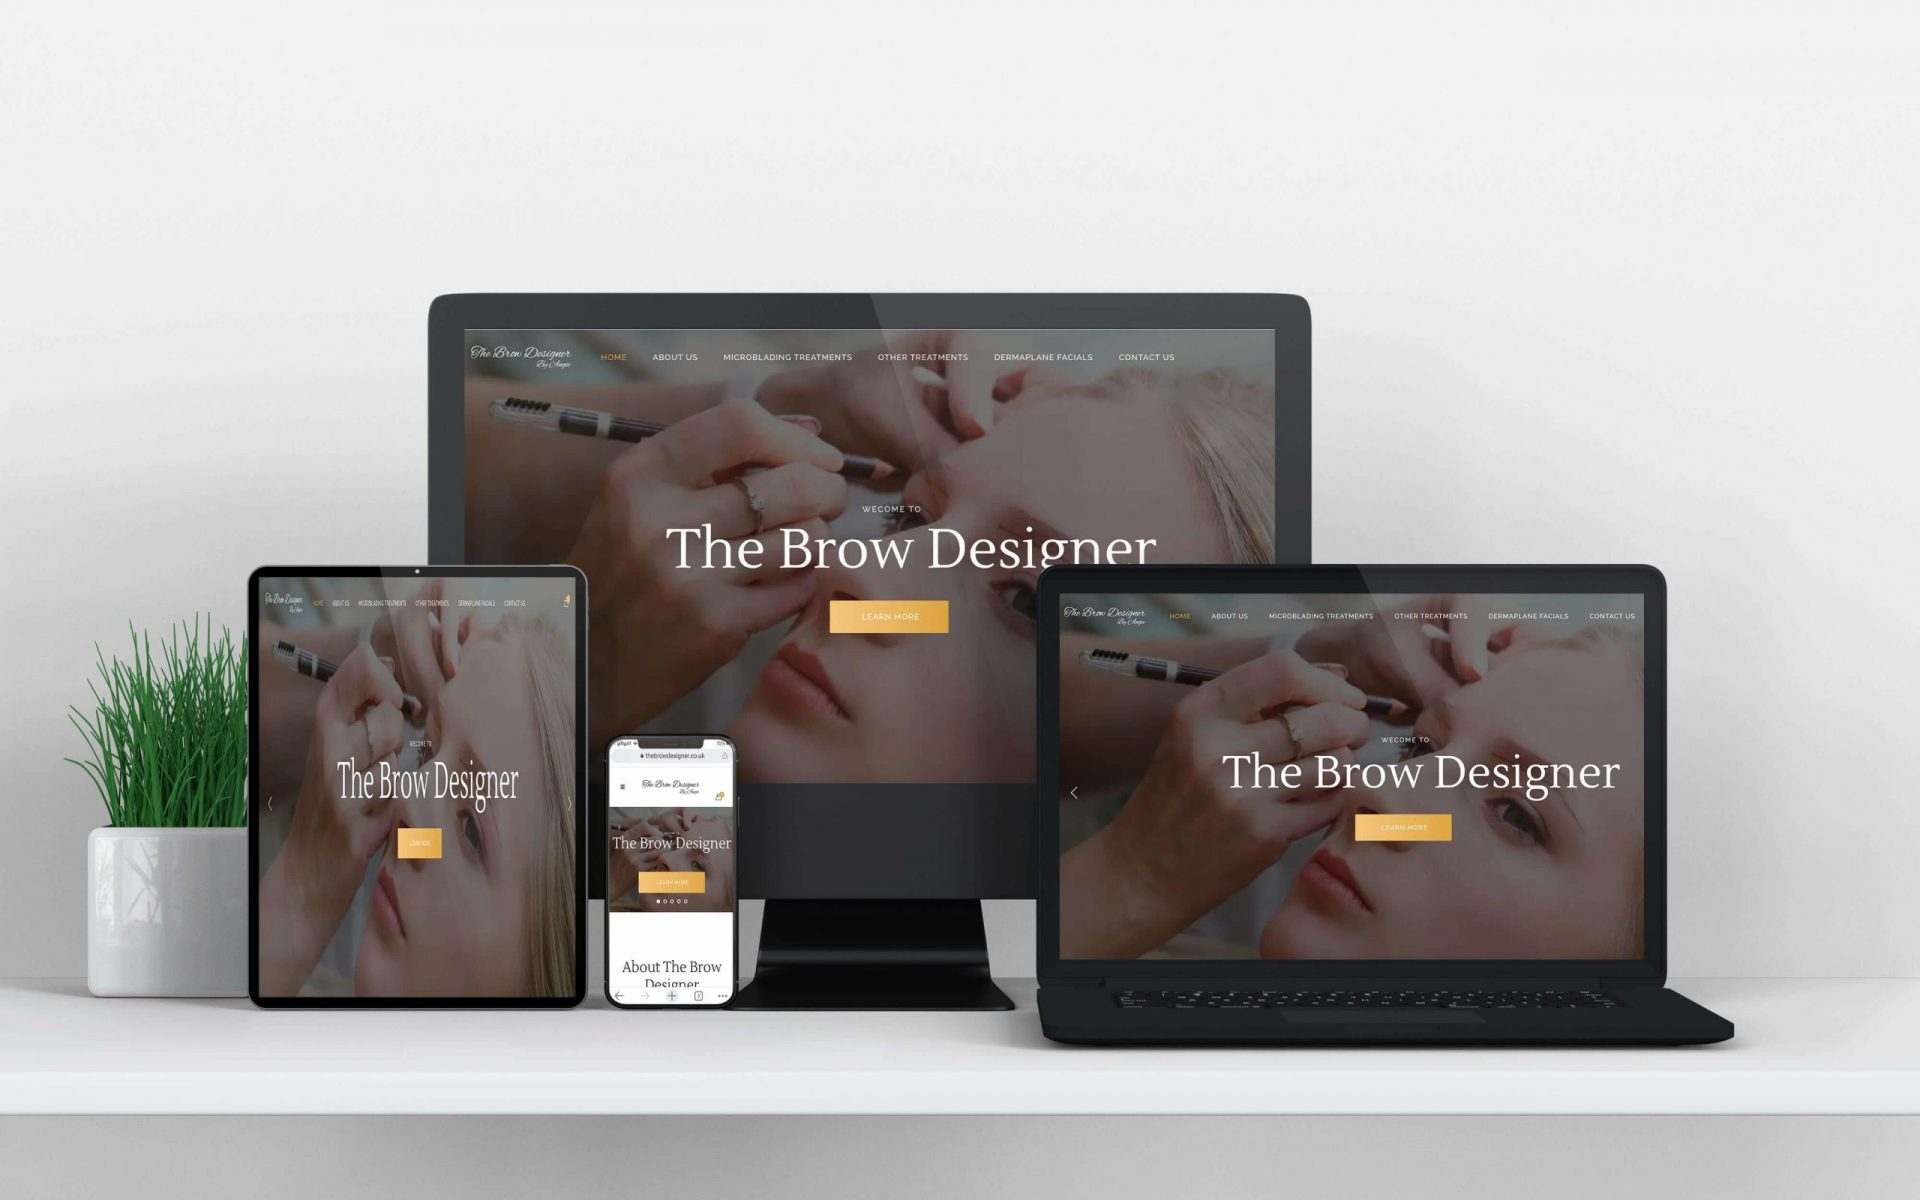 the-brow-designer-website-screens